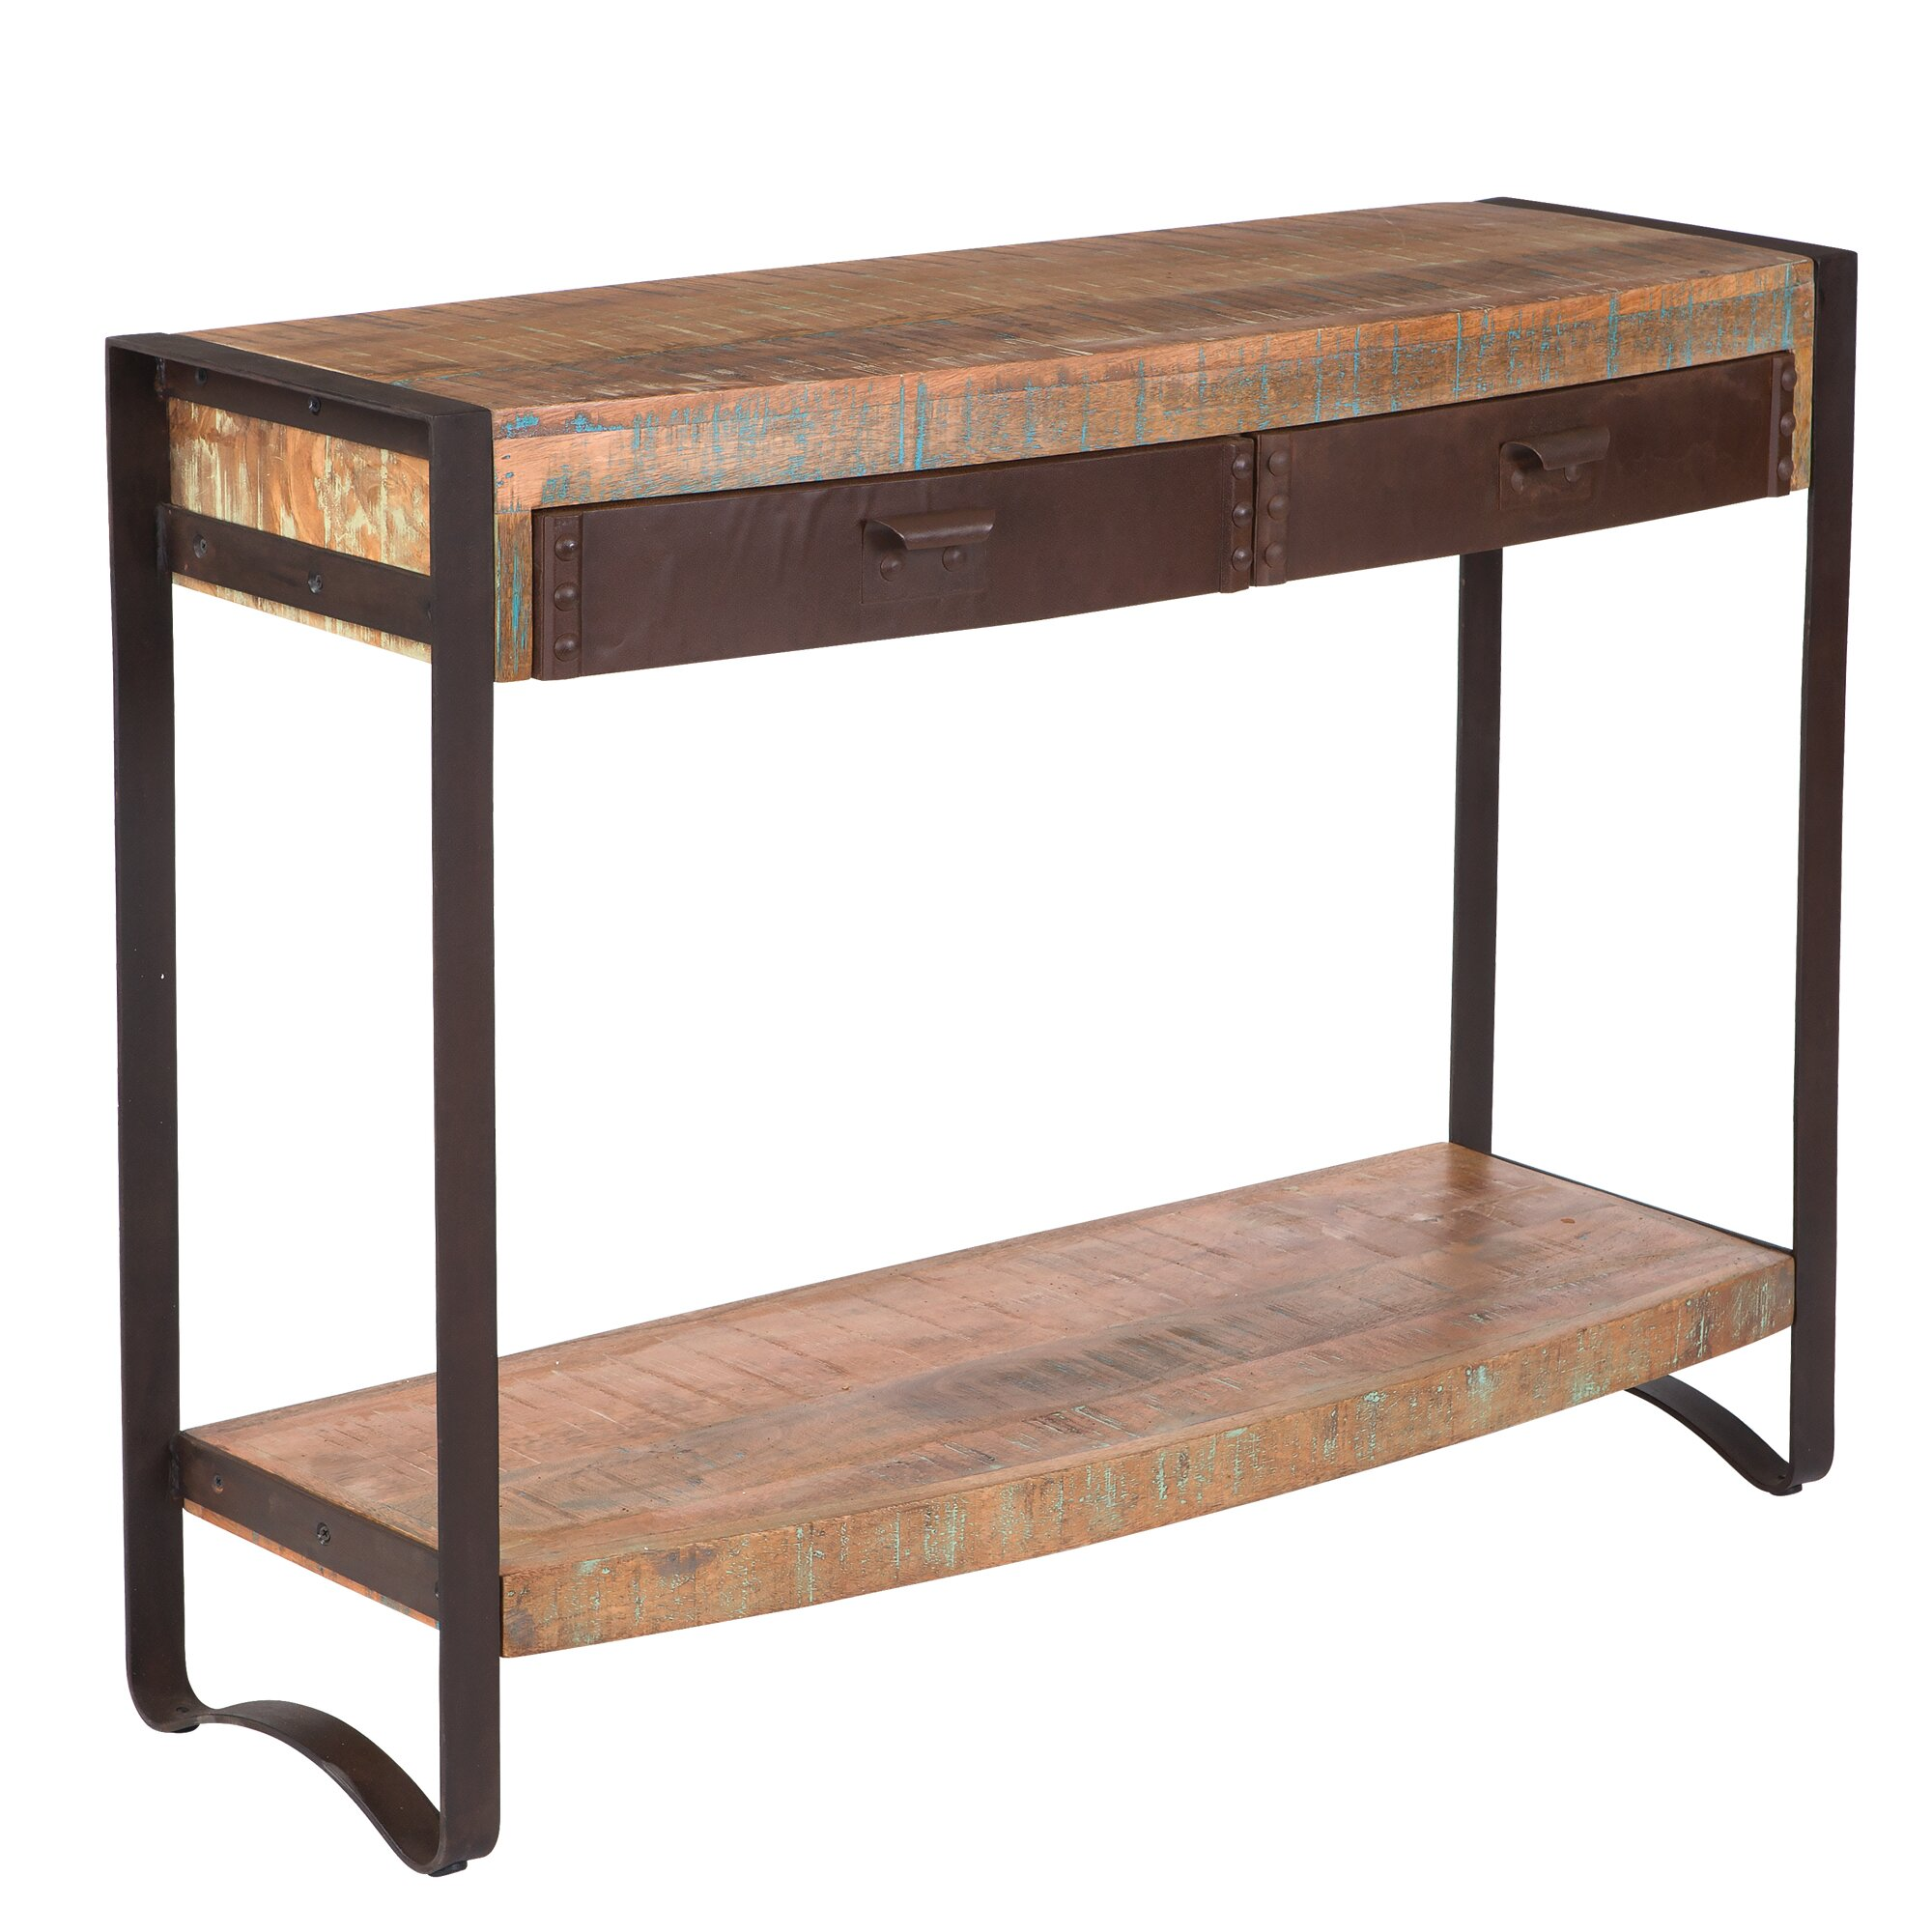 Wayfair Com Sales: Yosemite Home Decor Console Table